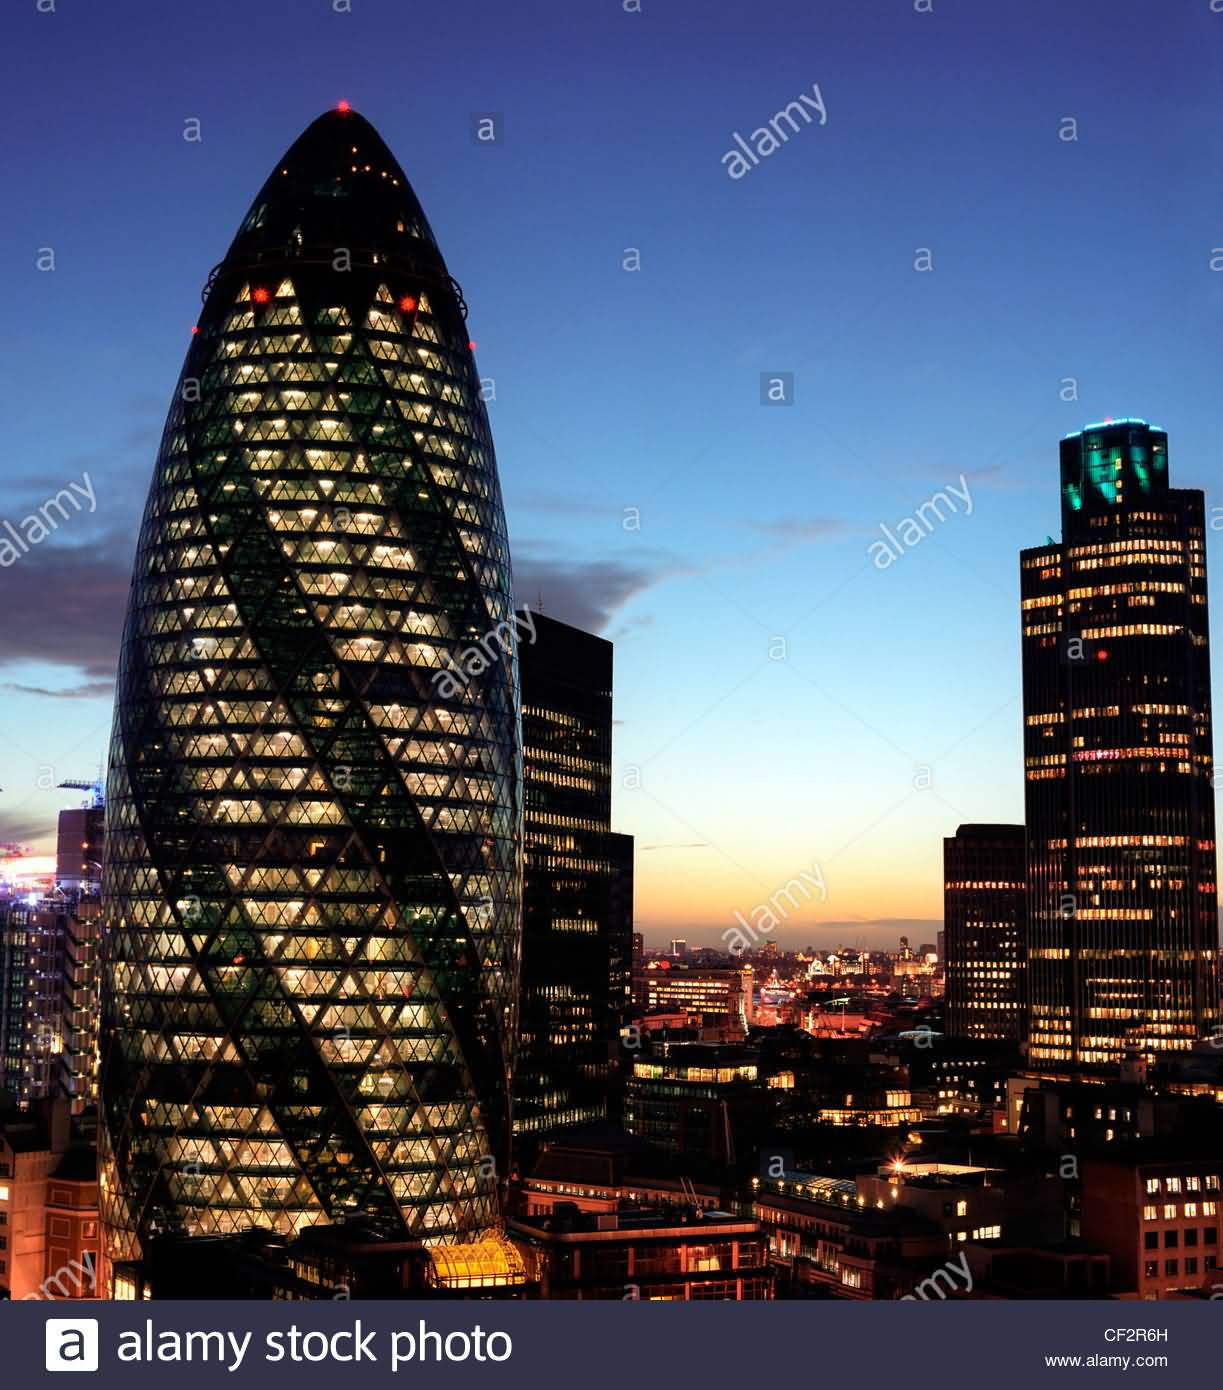 the gherkin and natwest tower buildings in london at night